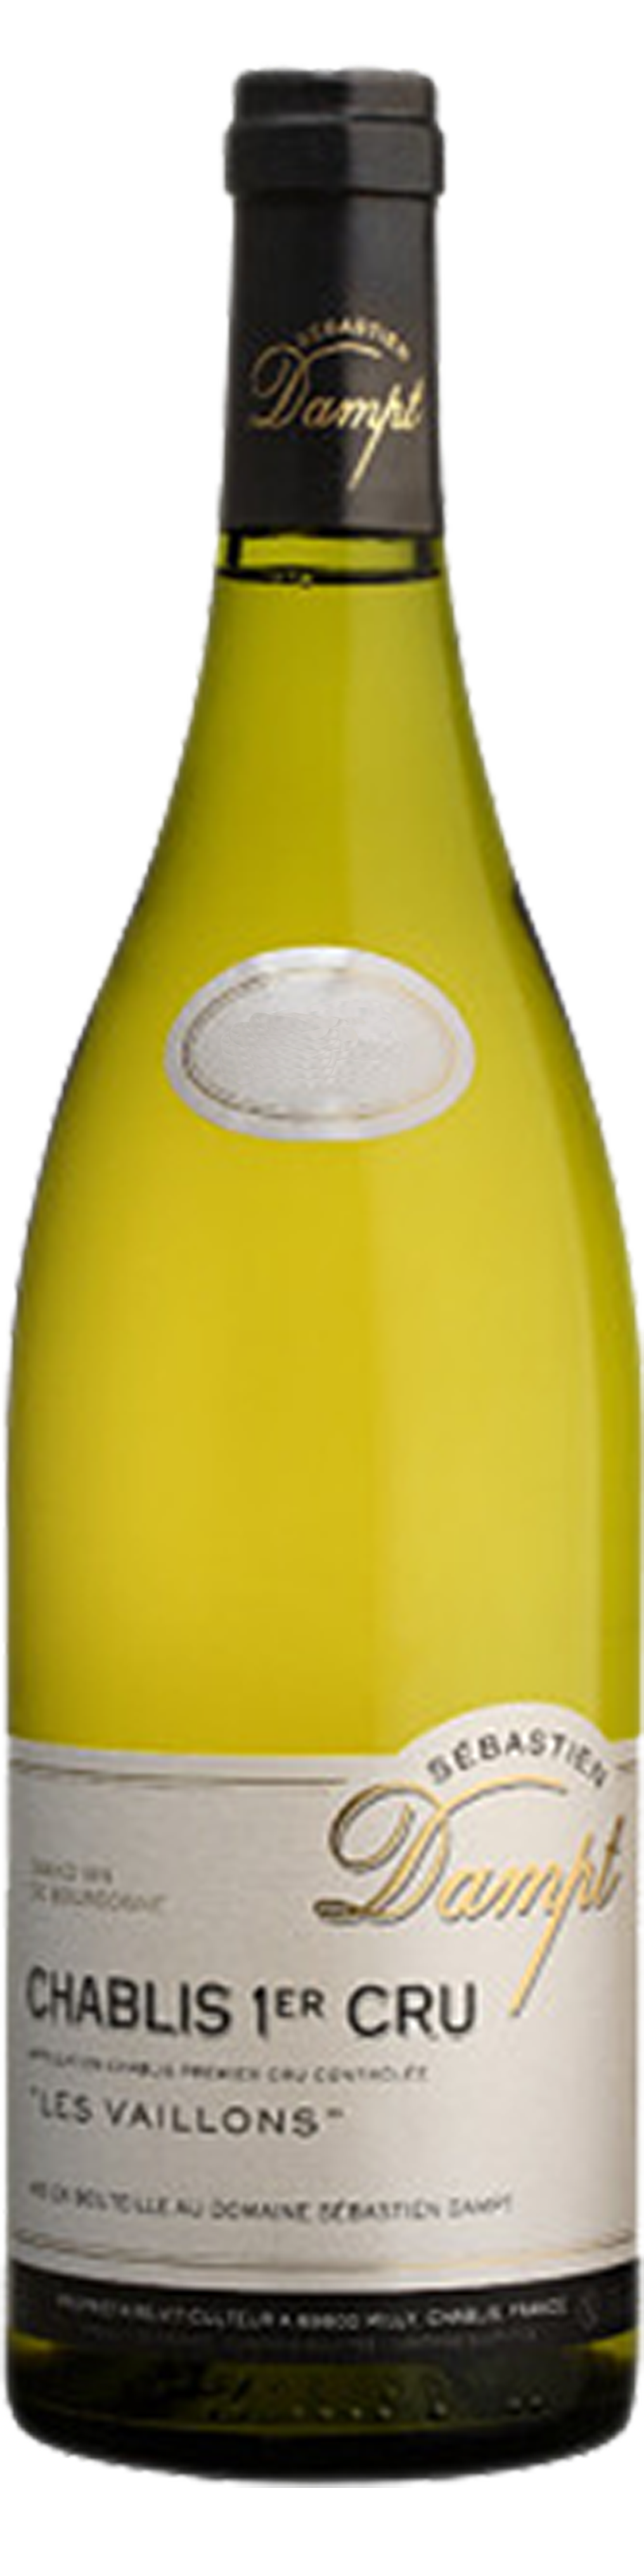 Image of product Chablis 1er Cru Vaillons